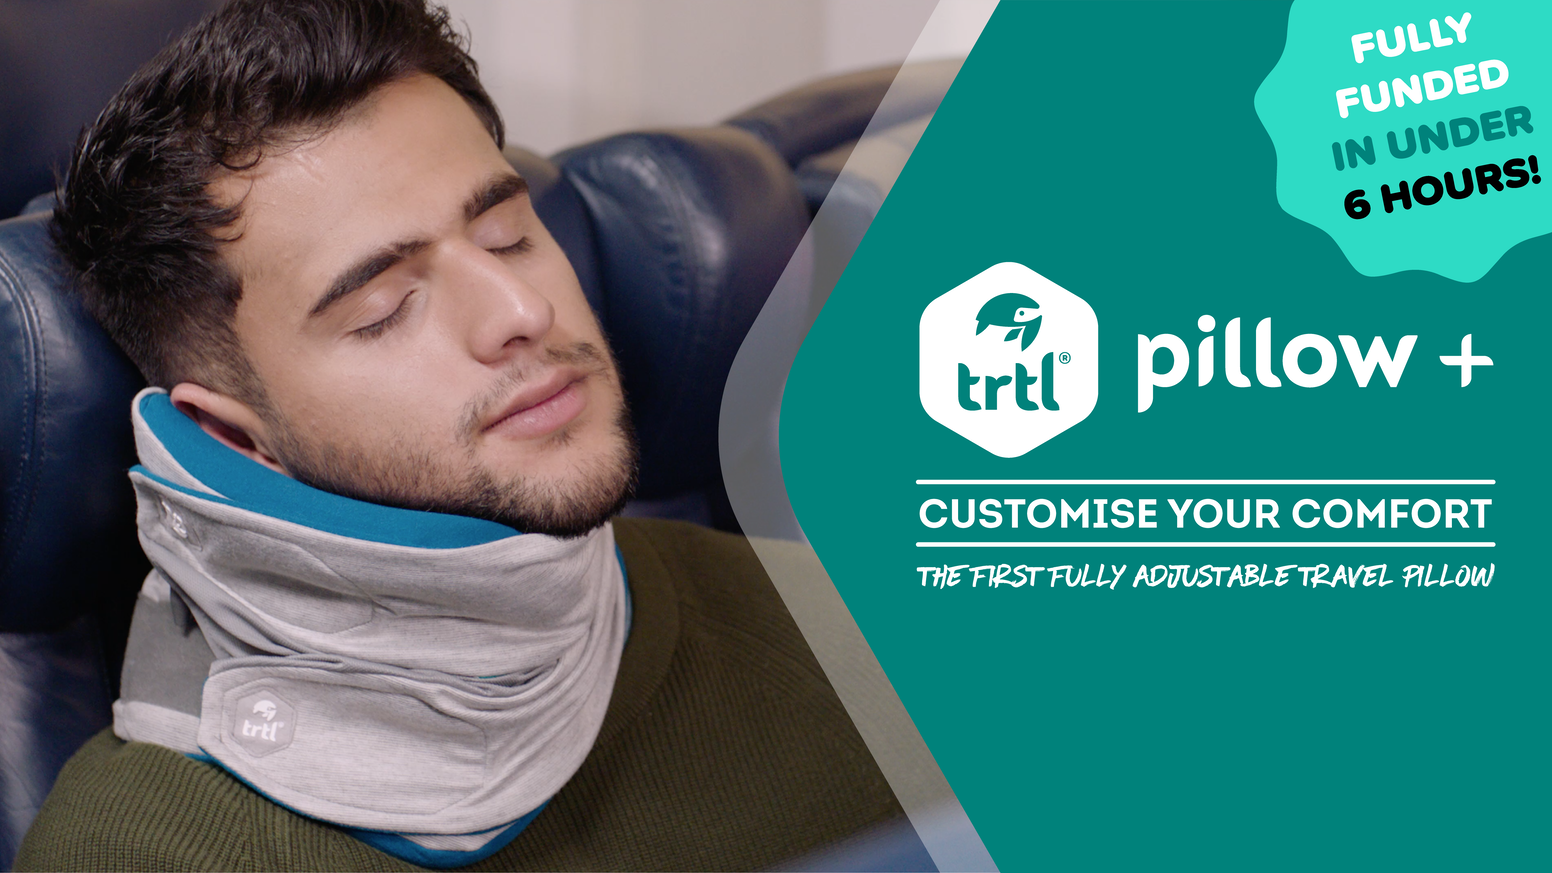 The Scientifically Engineered Travel Pillow With Premium Comfort And Breathability. Customise Your Comfort.